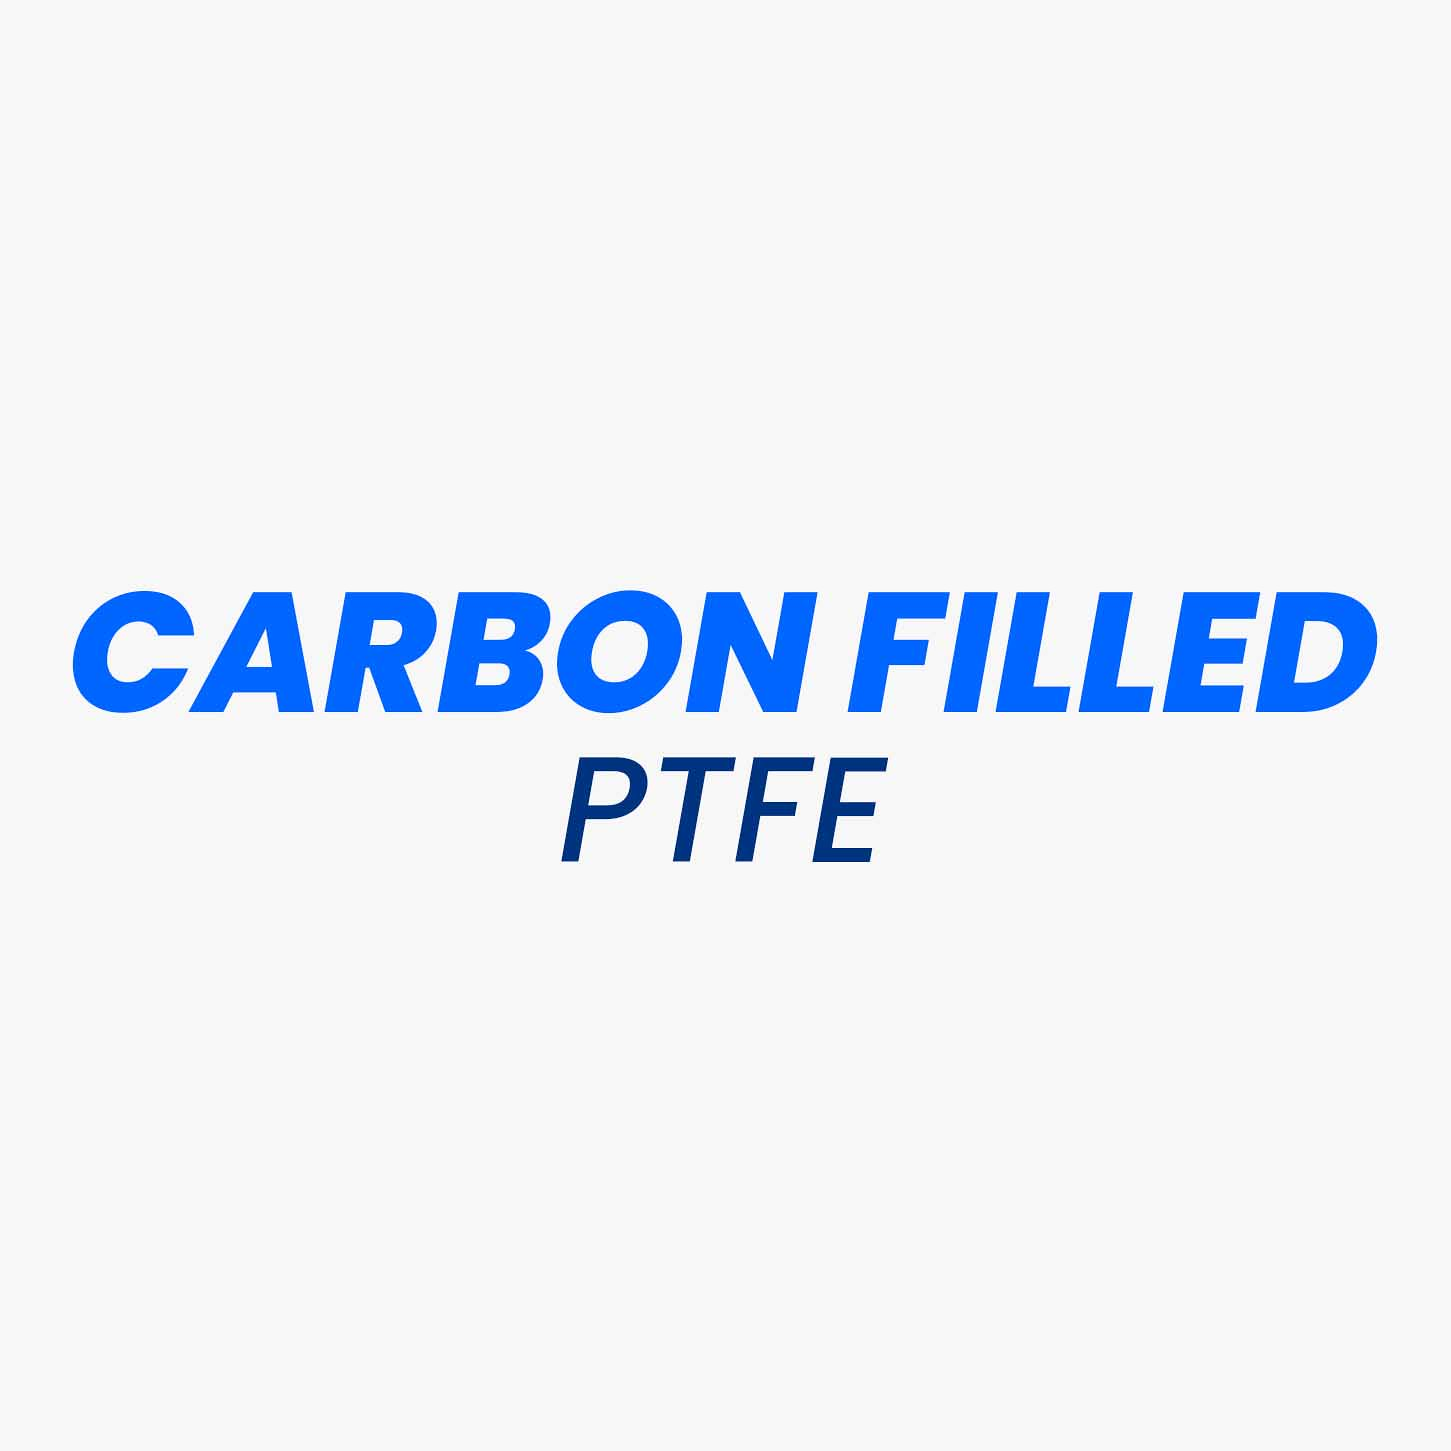 Virgin PTFE has good wear resistance, elastic and frictional properties, but its mechanical strength cannot withstand dynamic and high-pressure applications. Hence, Carbon is added in PTFE in the form of powder or fibres as the filler material, which improves the mechanical properties such as compressive strength and wear resistance of the PTFE. This makes the Carbon filled PTFE an excellent choice of material for rings and seals in a dynamic and high-pressure environment. As carbon is a conductive material, this ensures the suitability of Carbon filled PTFE products for higher thermal applications.